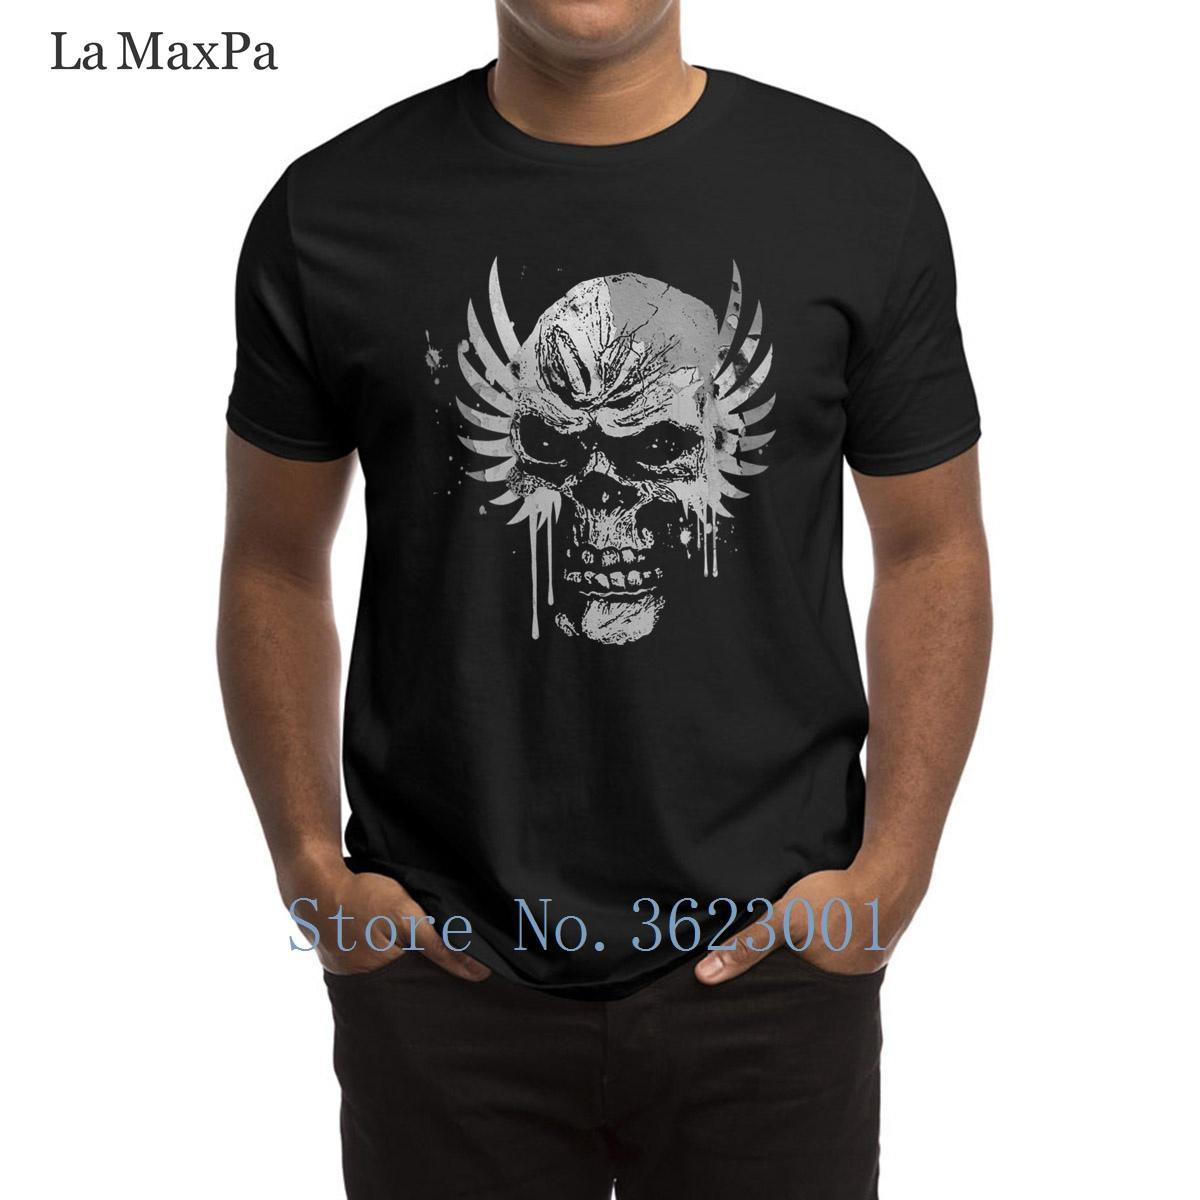 b657efbf Create Novelty Men T Shirt Grunge Skull With Wings And Drips T Shirt Slim  Fit Clothes Tshirt Funny S 3xl Tee Shirt Graphic Popular T Shirt Funny It  Shirts ...